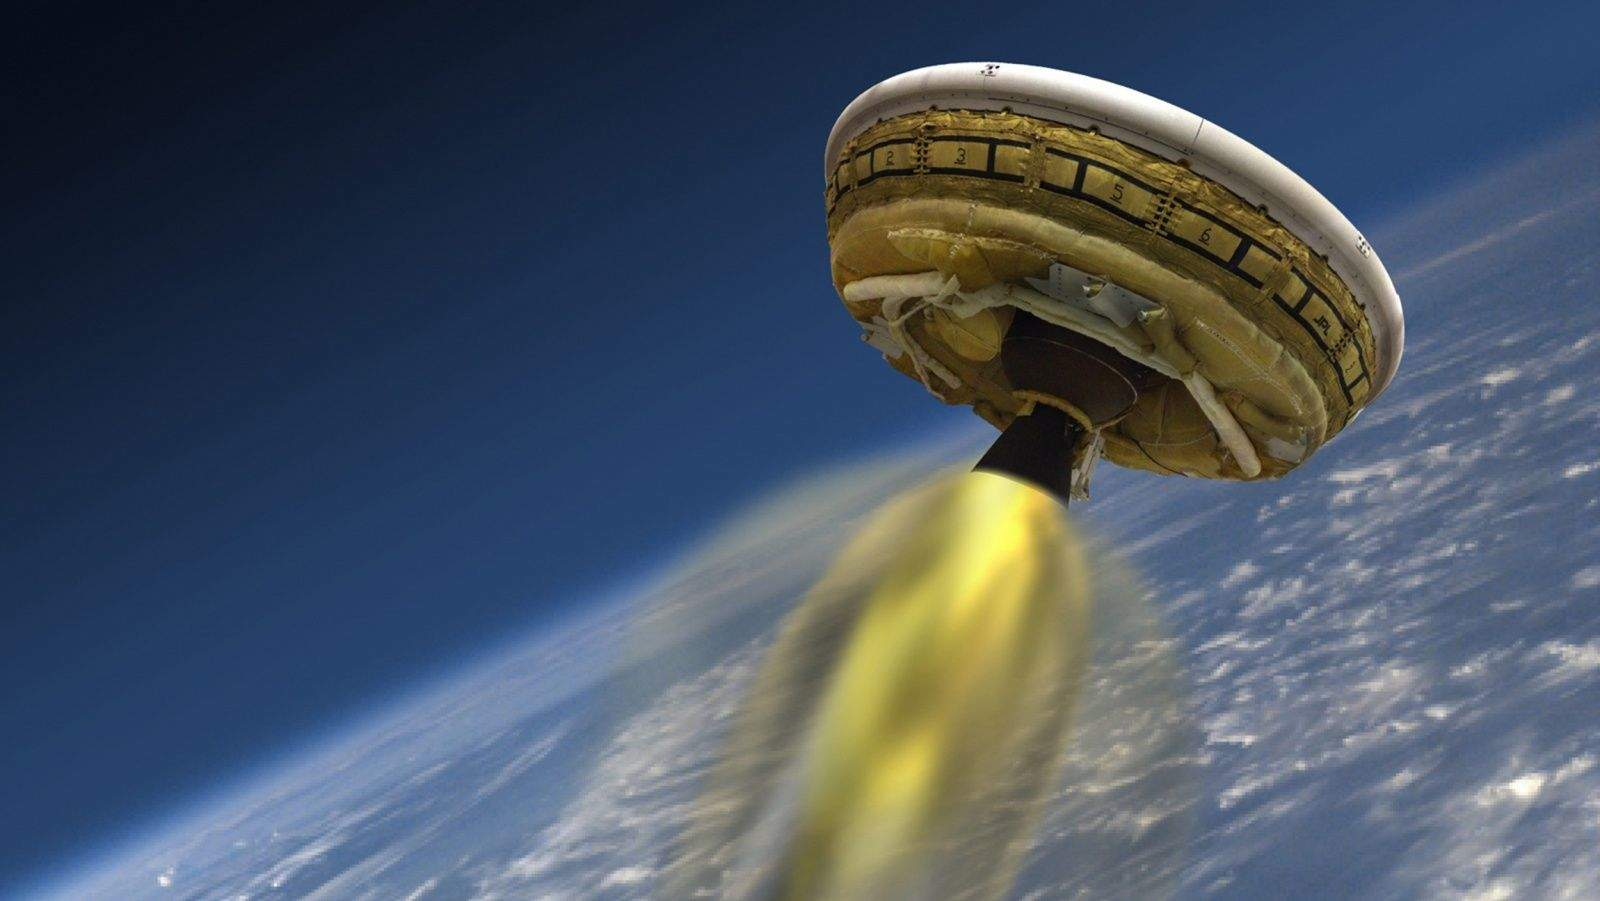 NASA's new Mars mission tech looks like a flying saucer